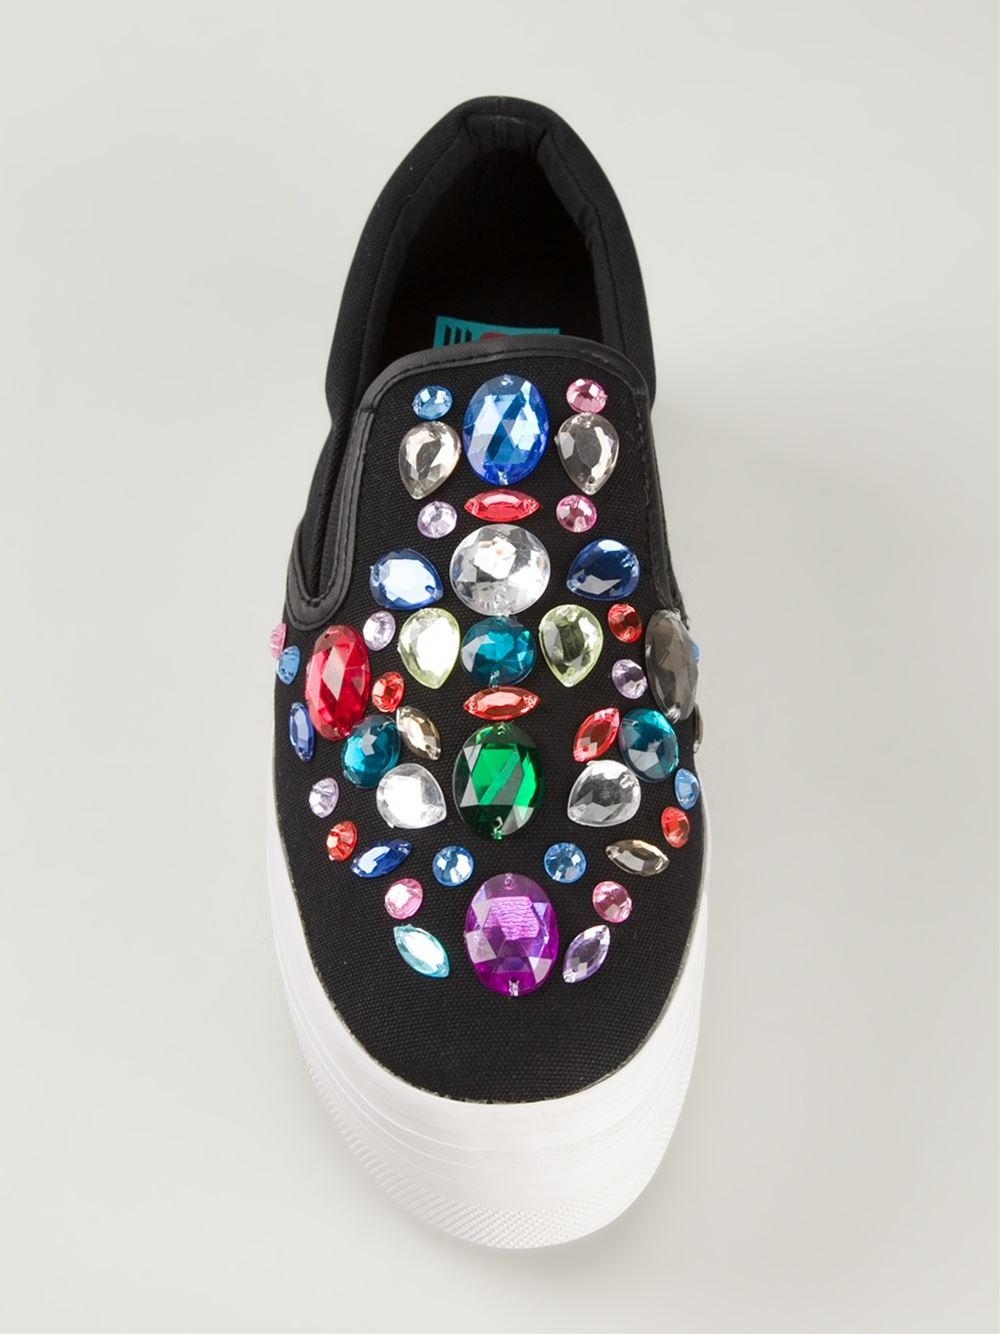 Lyst Jeffrey Campbell Embellished Slip On Sneakers In Black